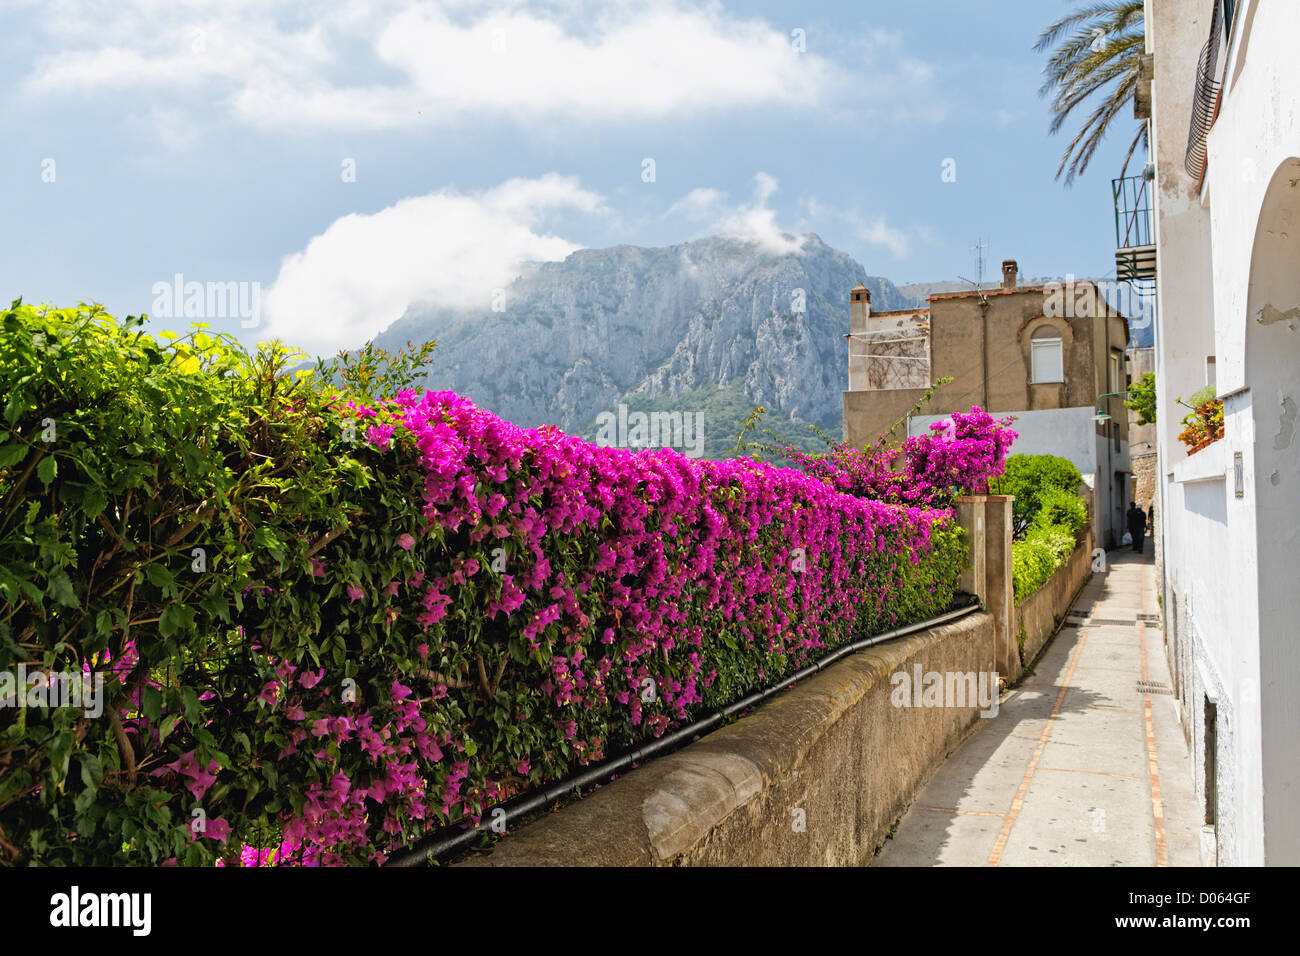 Blooming Flowers on a Fence along an Alleyway, Capri, Campania, Italy - Stock Image